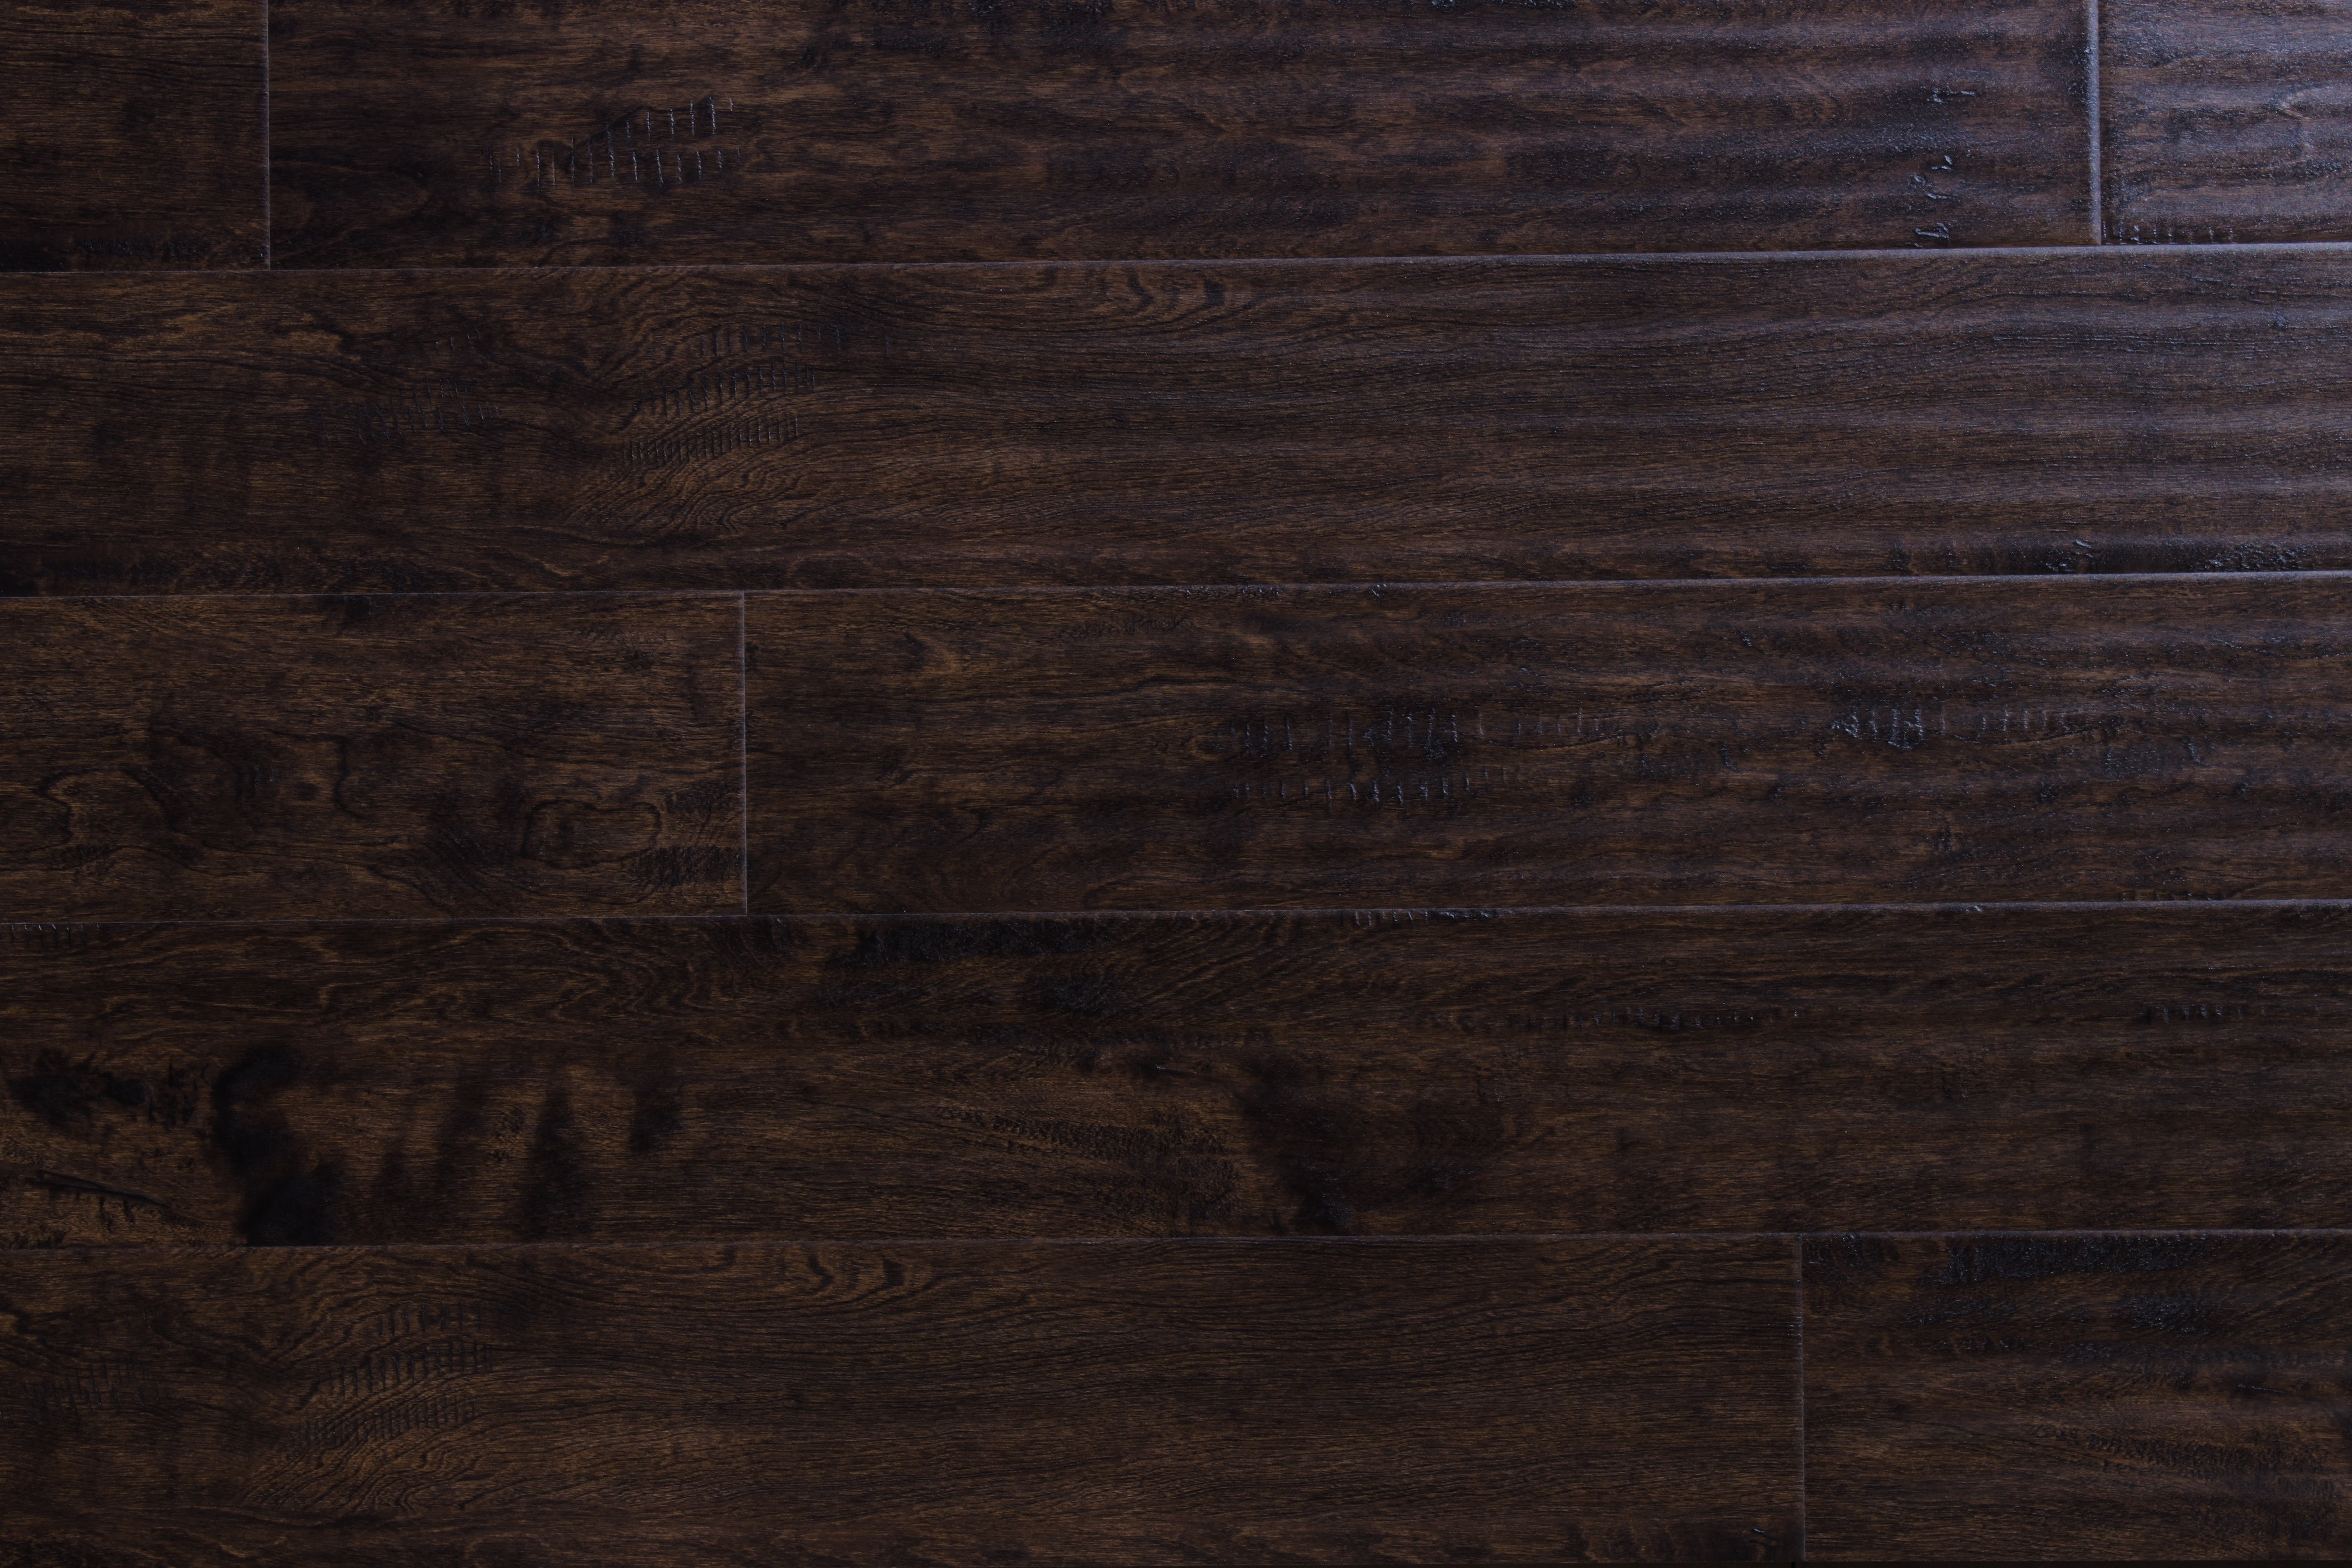 grey hardwood floors canada of wood flooring free samples available at builddirecta inside tailor multi gb 5874277bb8d3c